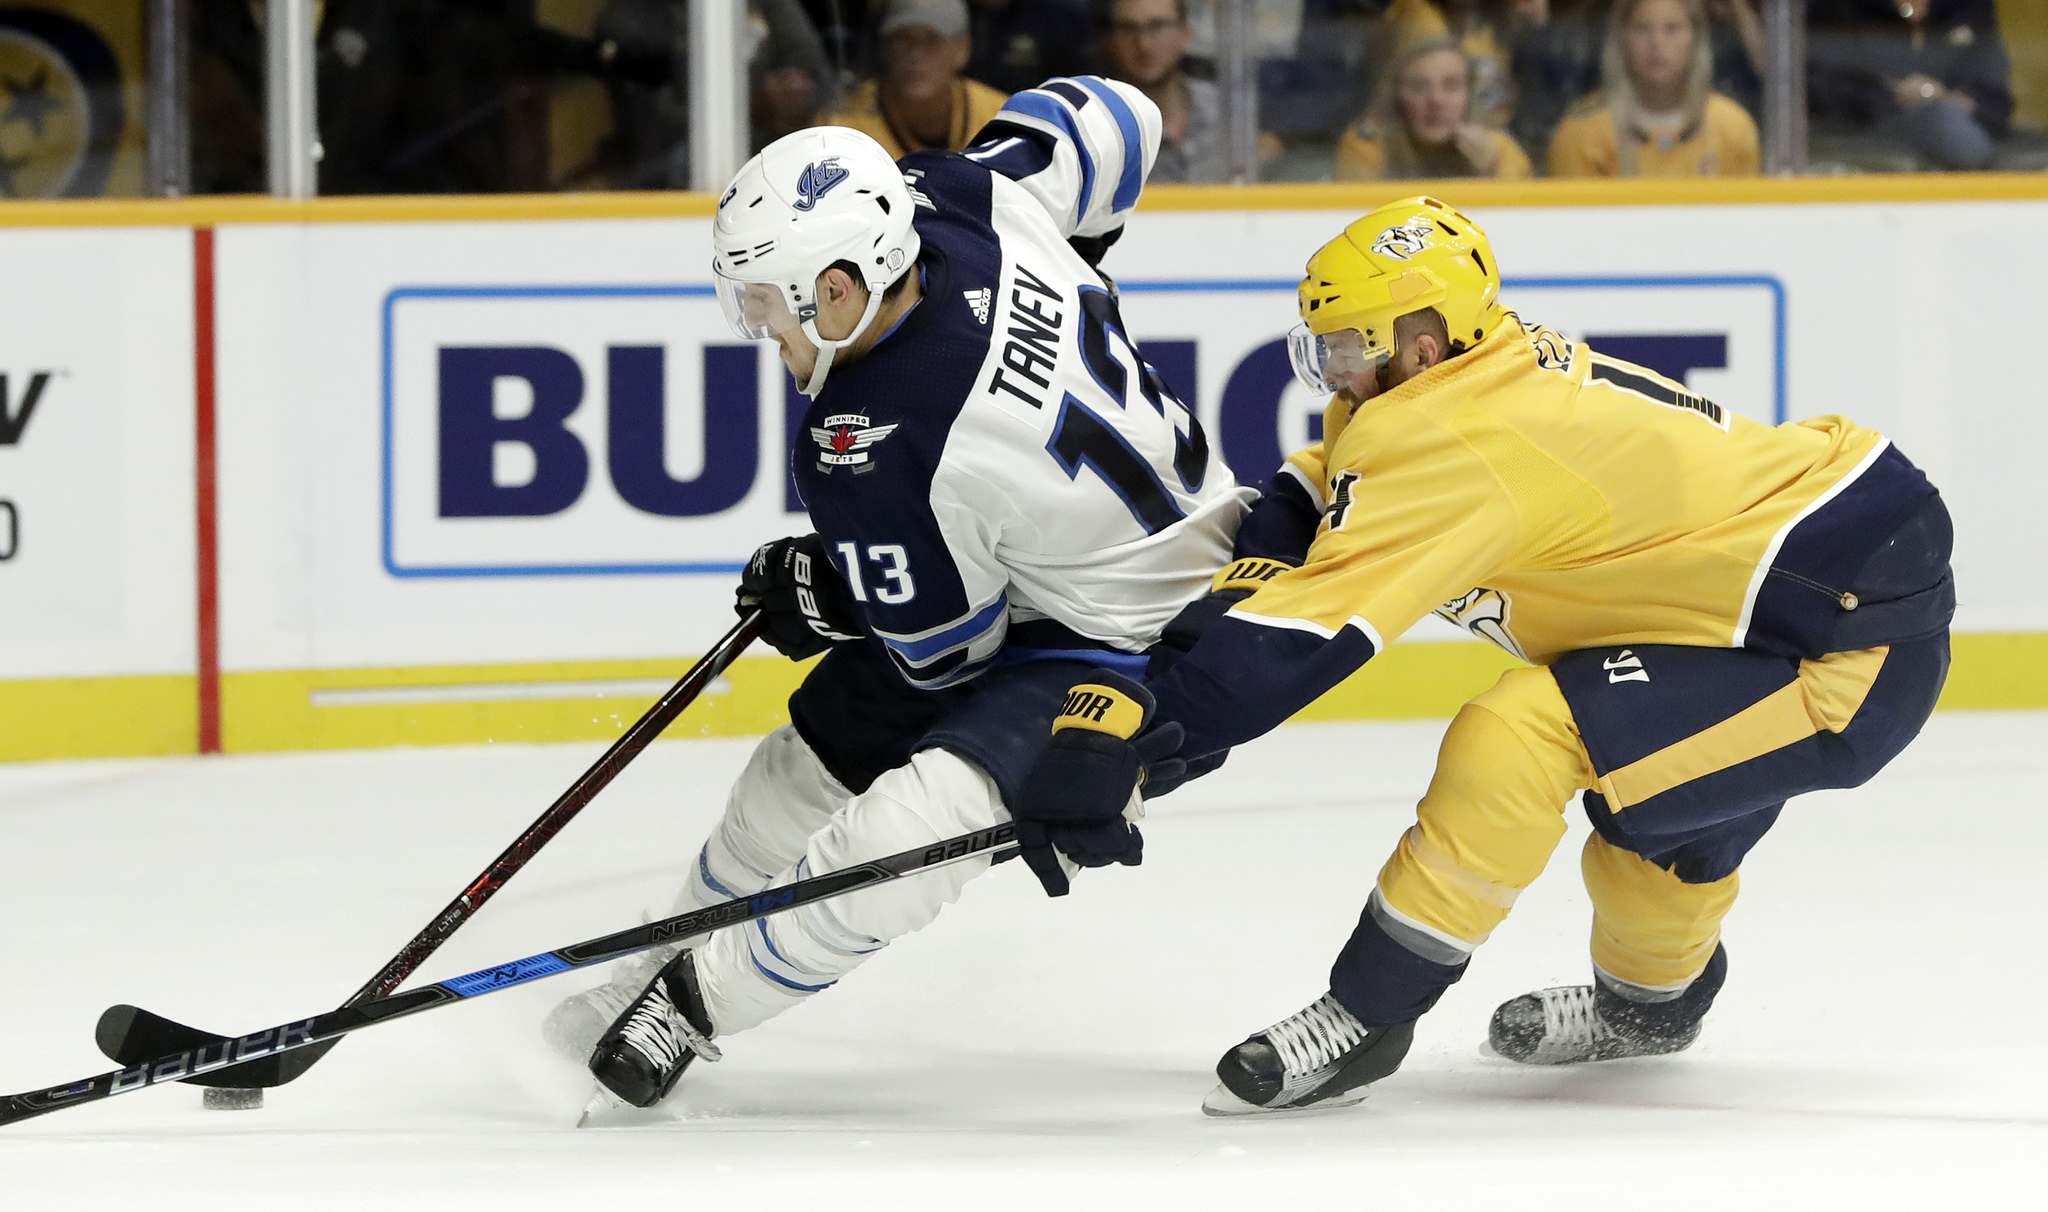 Brandon Tanev moves the puck ahead of defenceman Ryan Ellis in the first period in Nashville, Tenn. last night. (Mark Humphrey / The Associated Press)</p></p>